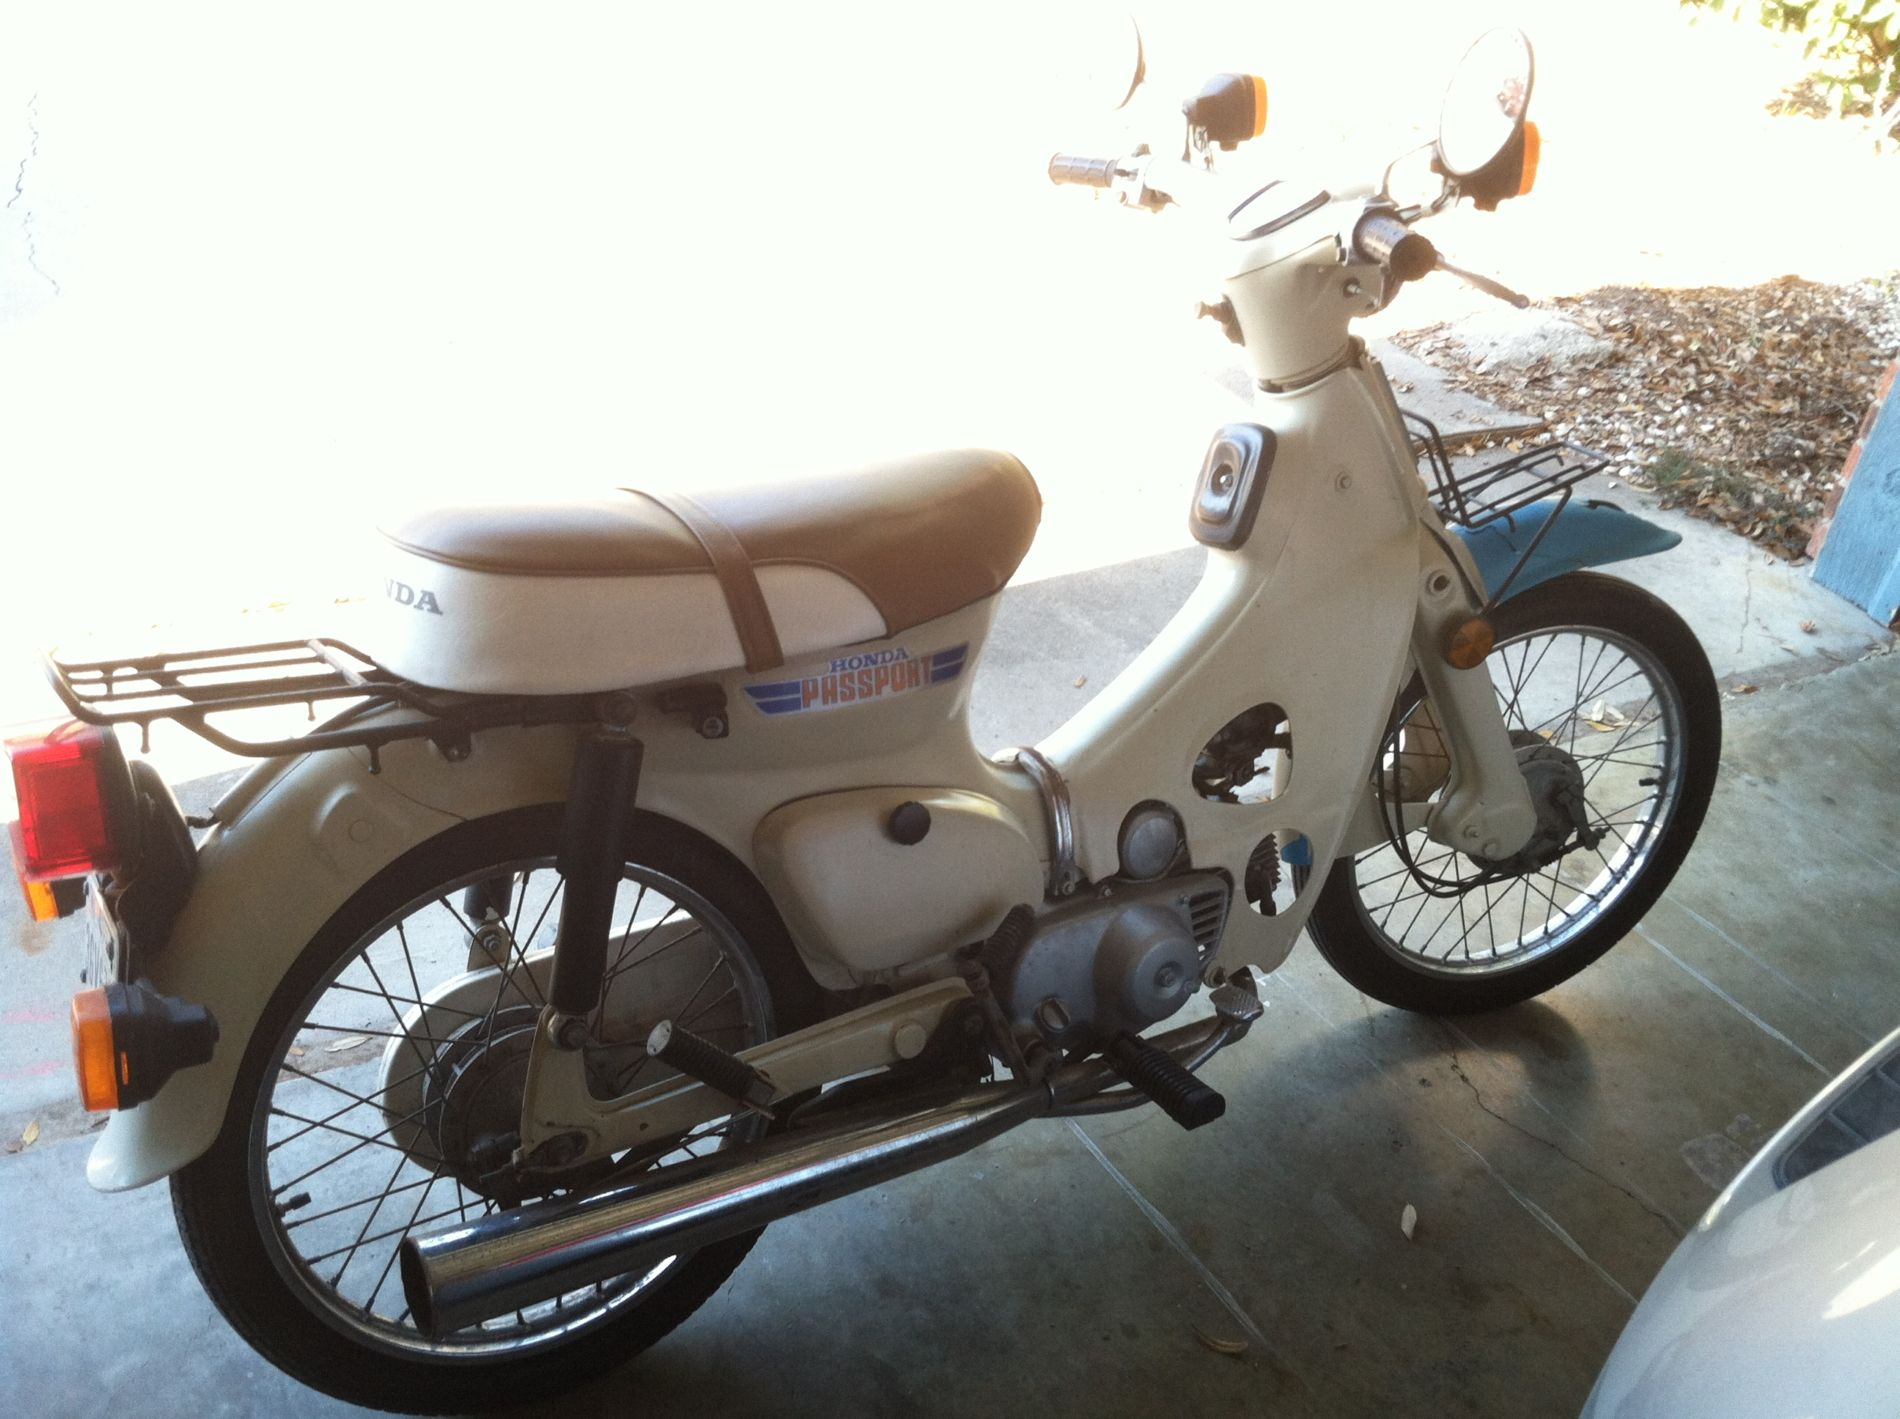 1981 Honda C70 Passport bought today! | Adventure Rider